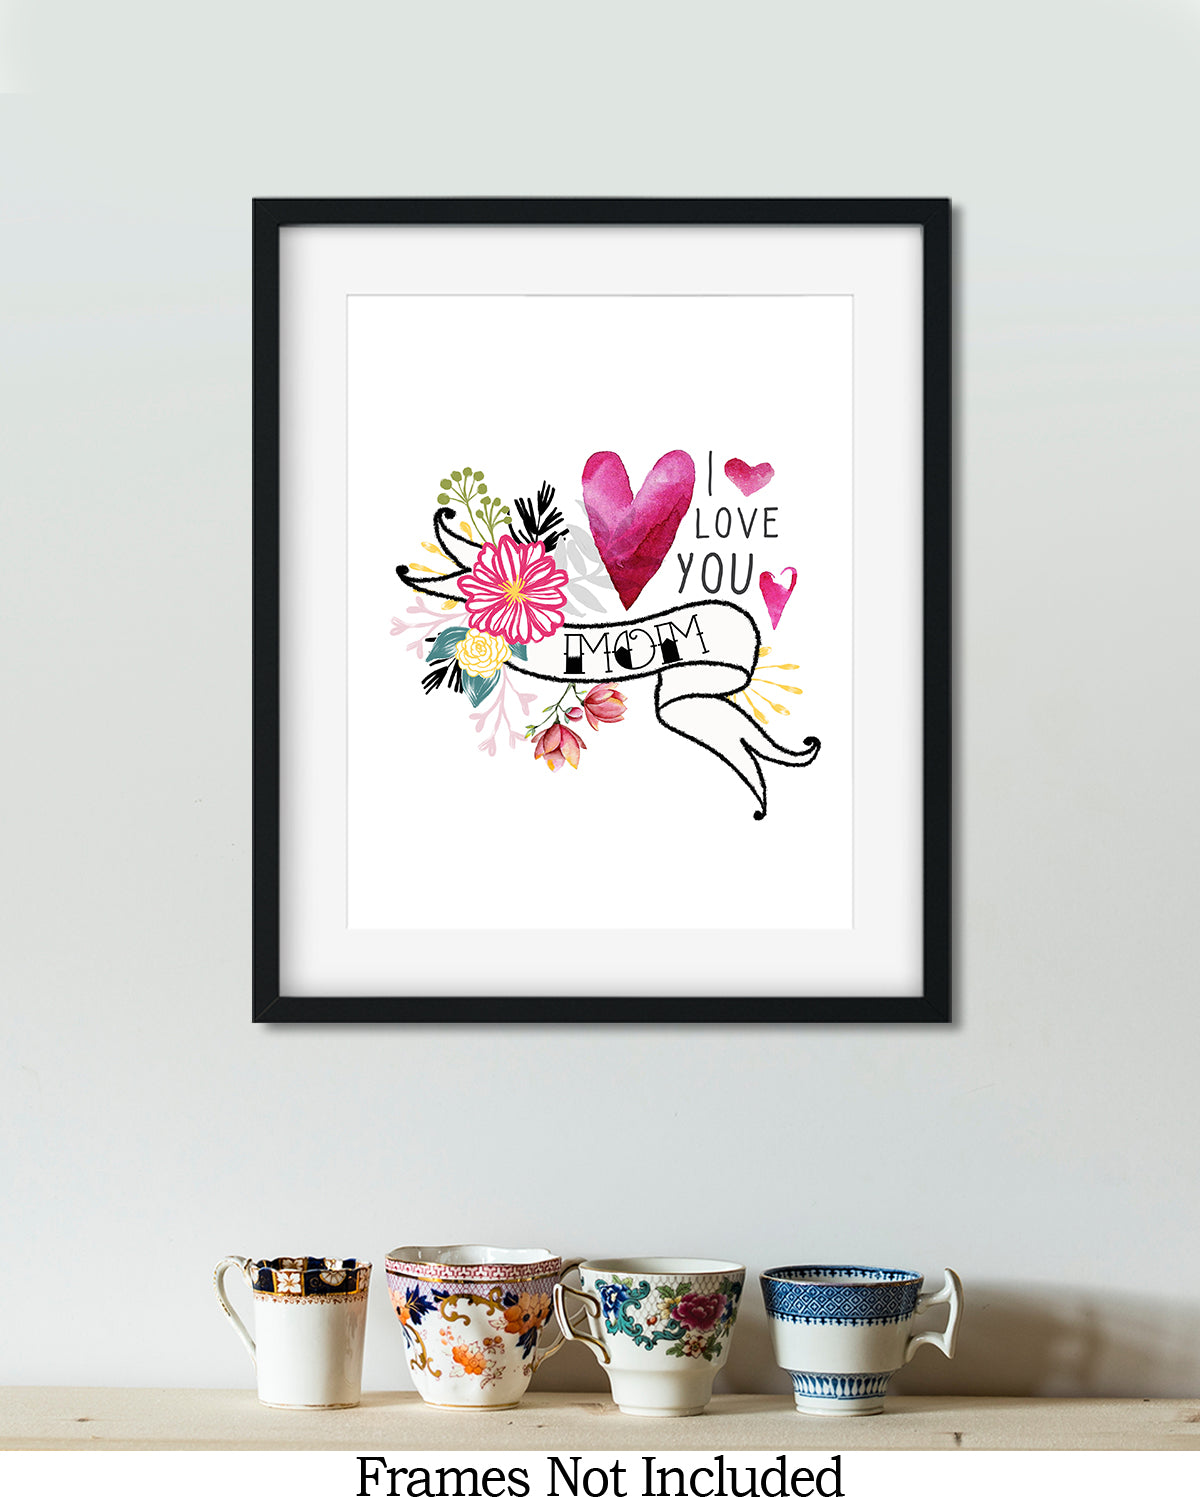 I Love You Mom - Wall Decor Art Print with White background - 8x10 unframed print for mothers